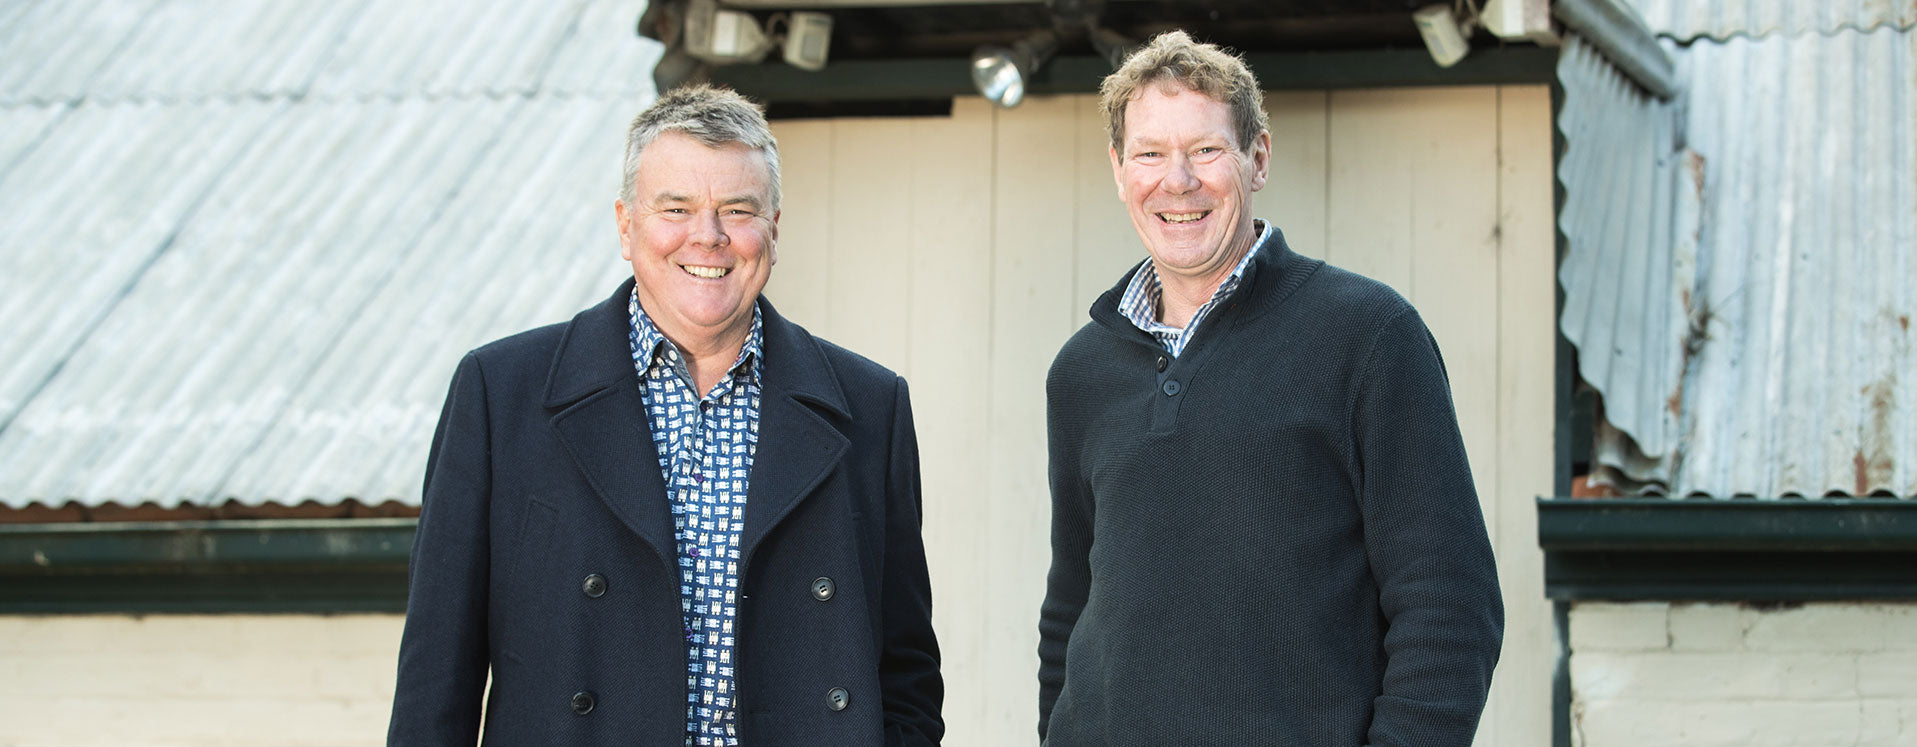 Winemakers David O'Leary (left) and Nick Walker stand side by side outside one of the old timber and iron sheds at the historic O'Leary Walker site in the Adelaide Hills.